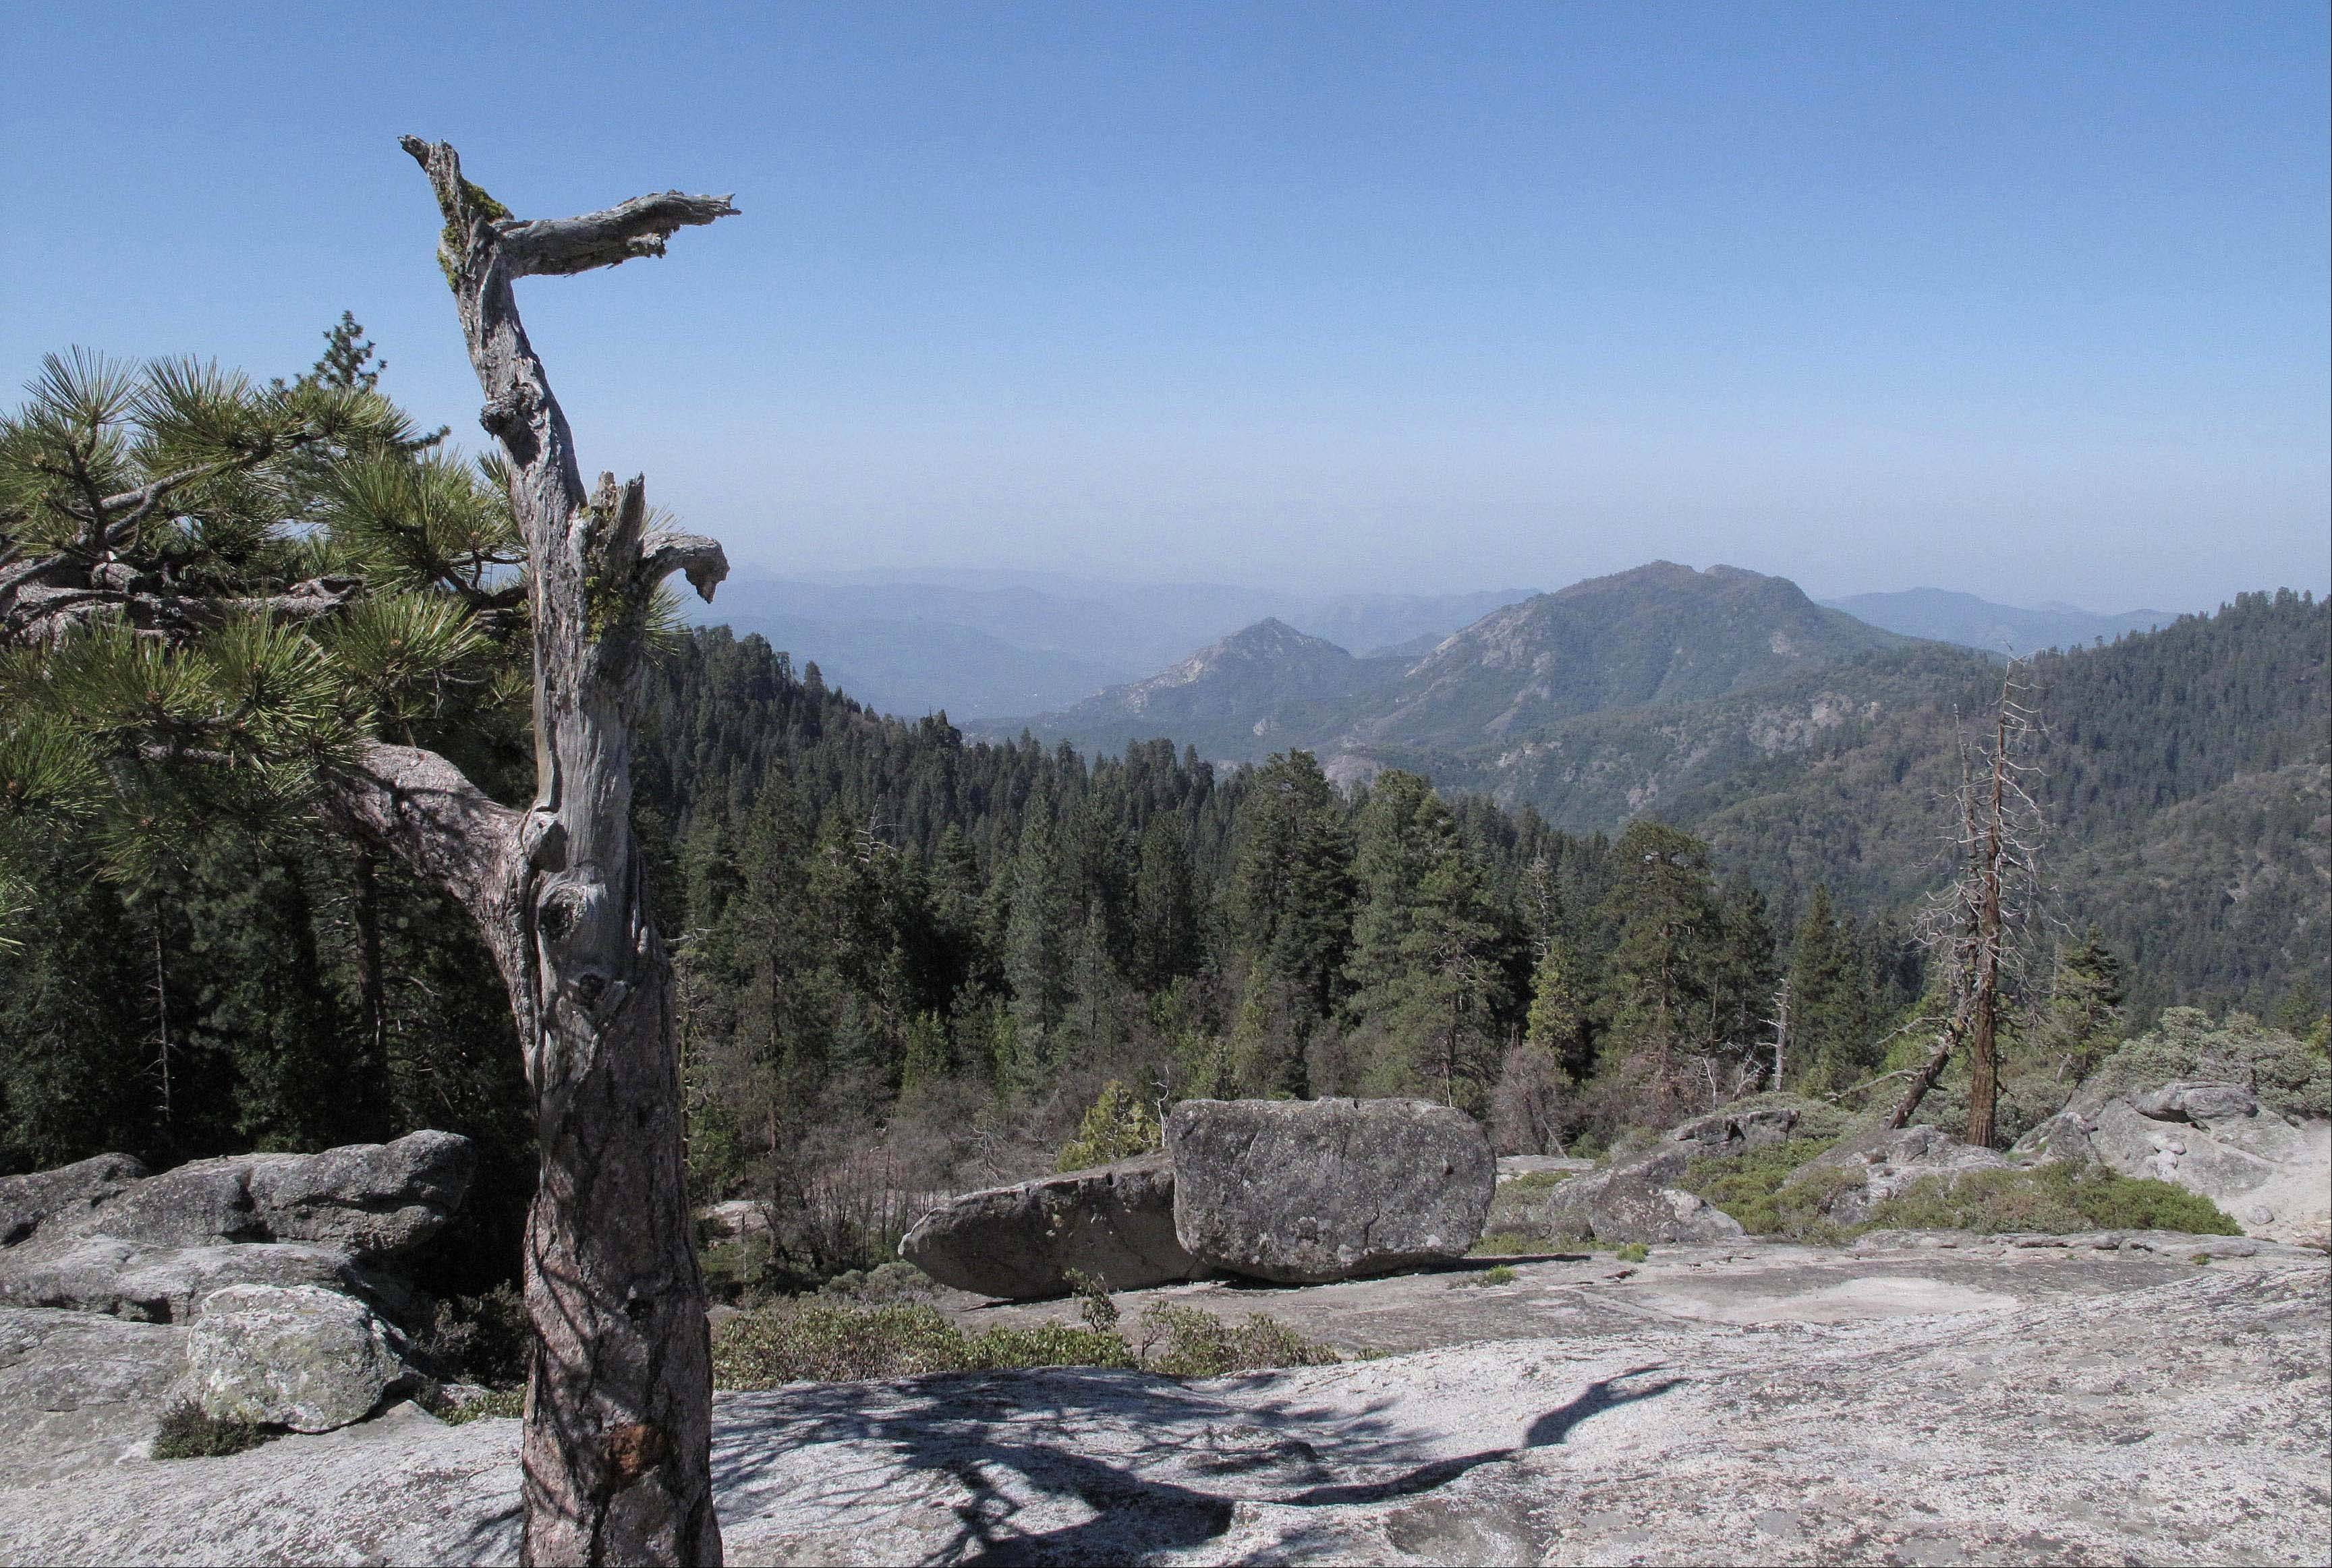 The view from Beetle Rock in Sequoia National Park, Calif., is seen. In parts of California�s Sierra Nevada, the incursion of trees is sucking marshy meadows dry. Glaciers are melting into mere ice fields. Wildflowers are blooming earlier. And the optimal temperature zone for Giant Sequoias is predicted to rise several thousand feet higher, leaving existing trees at risk of dying over the next 100 years.